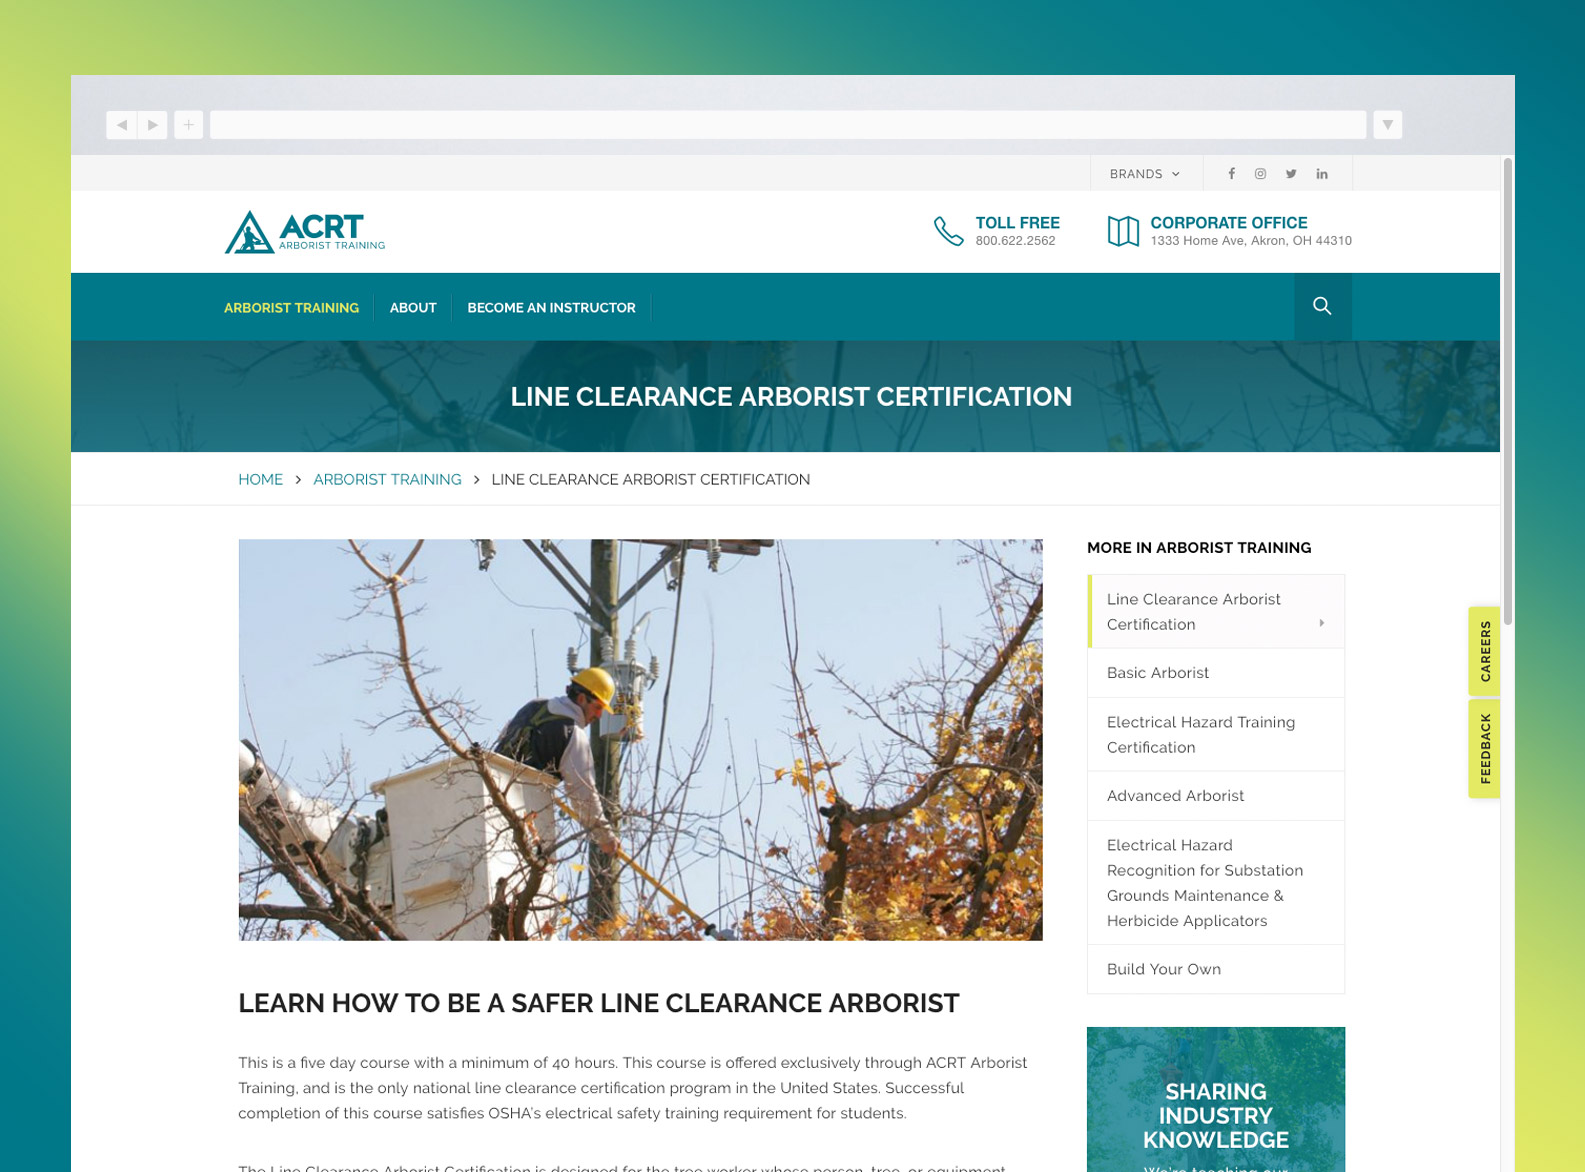 ACRT Arborist Training Website Services